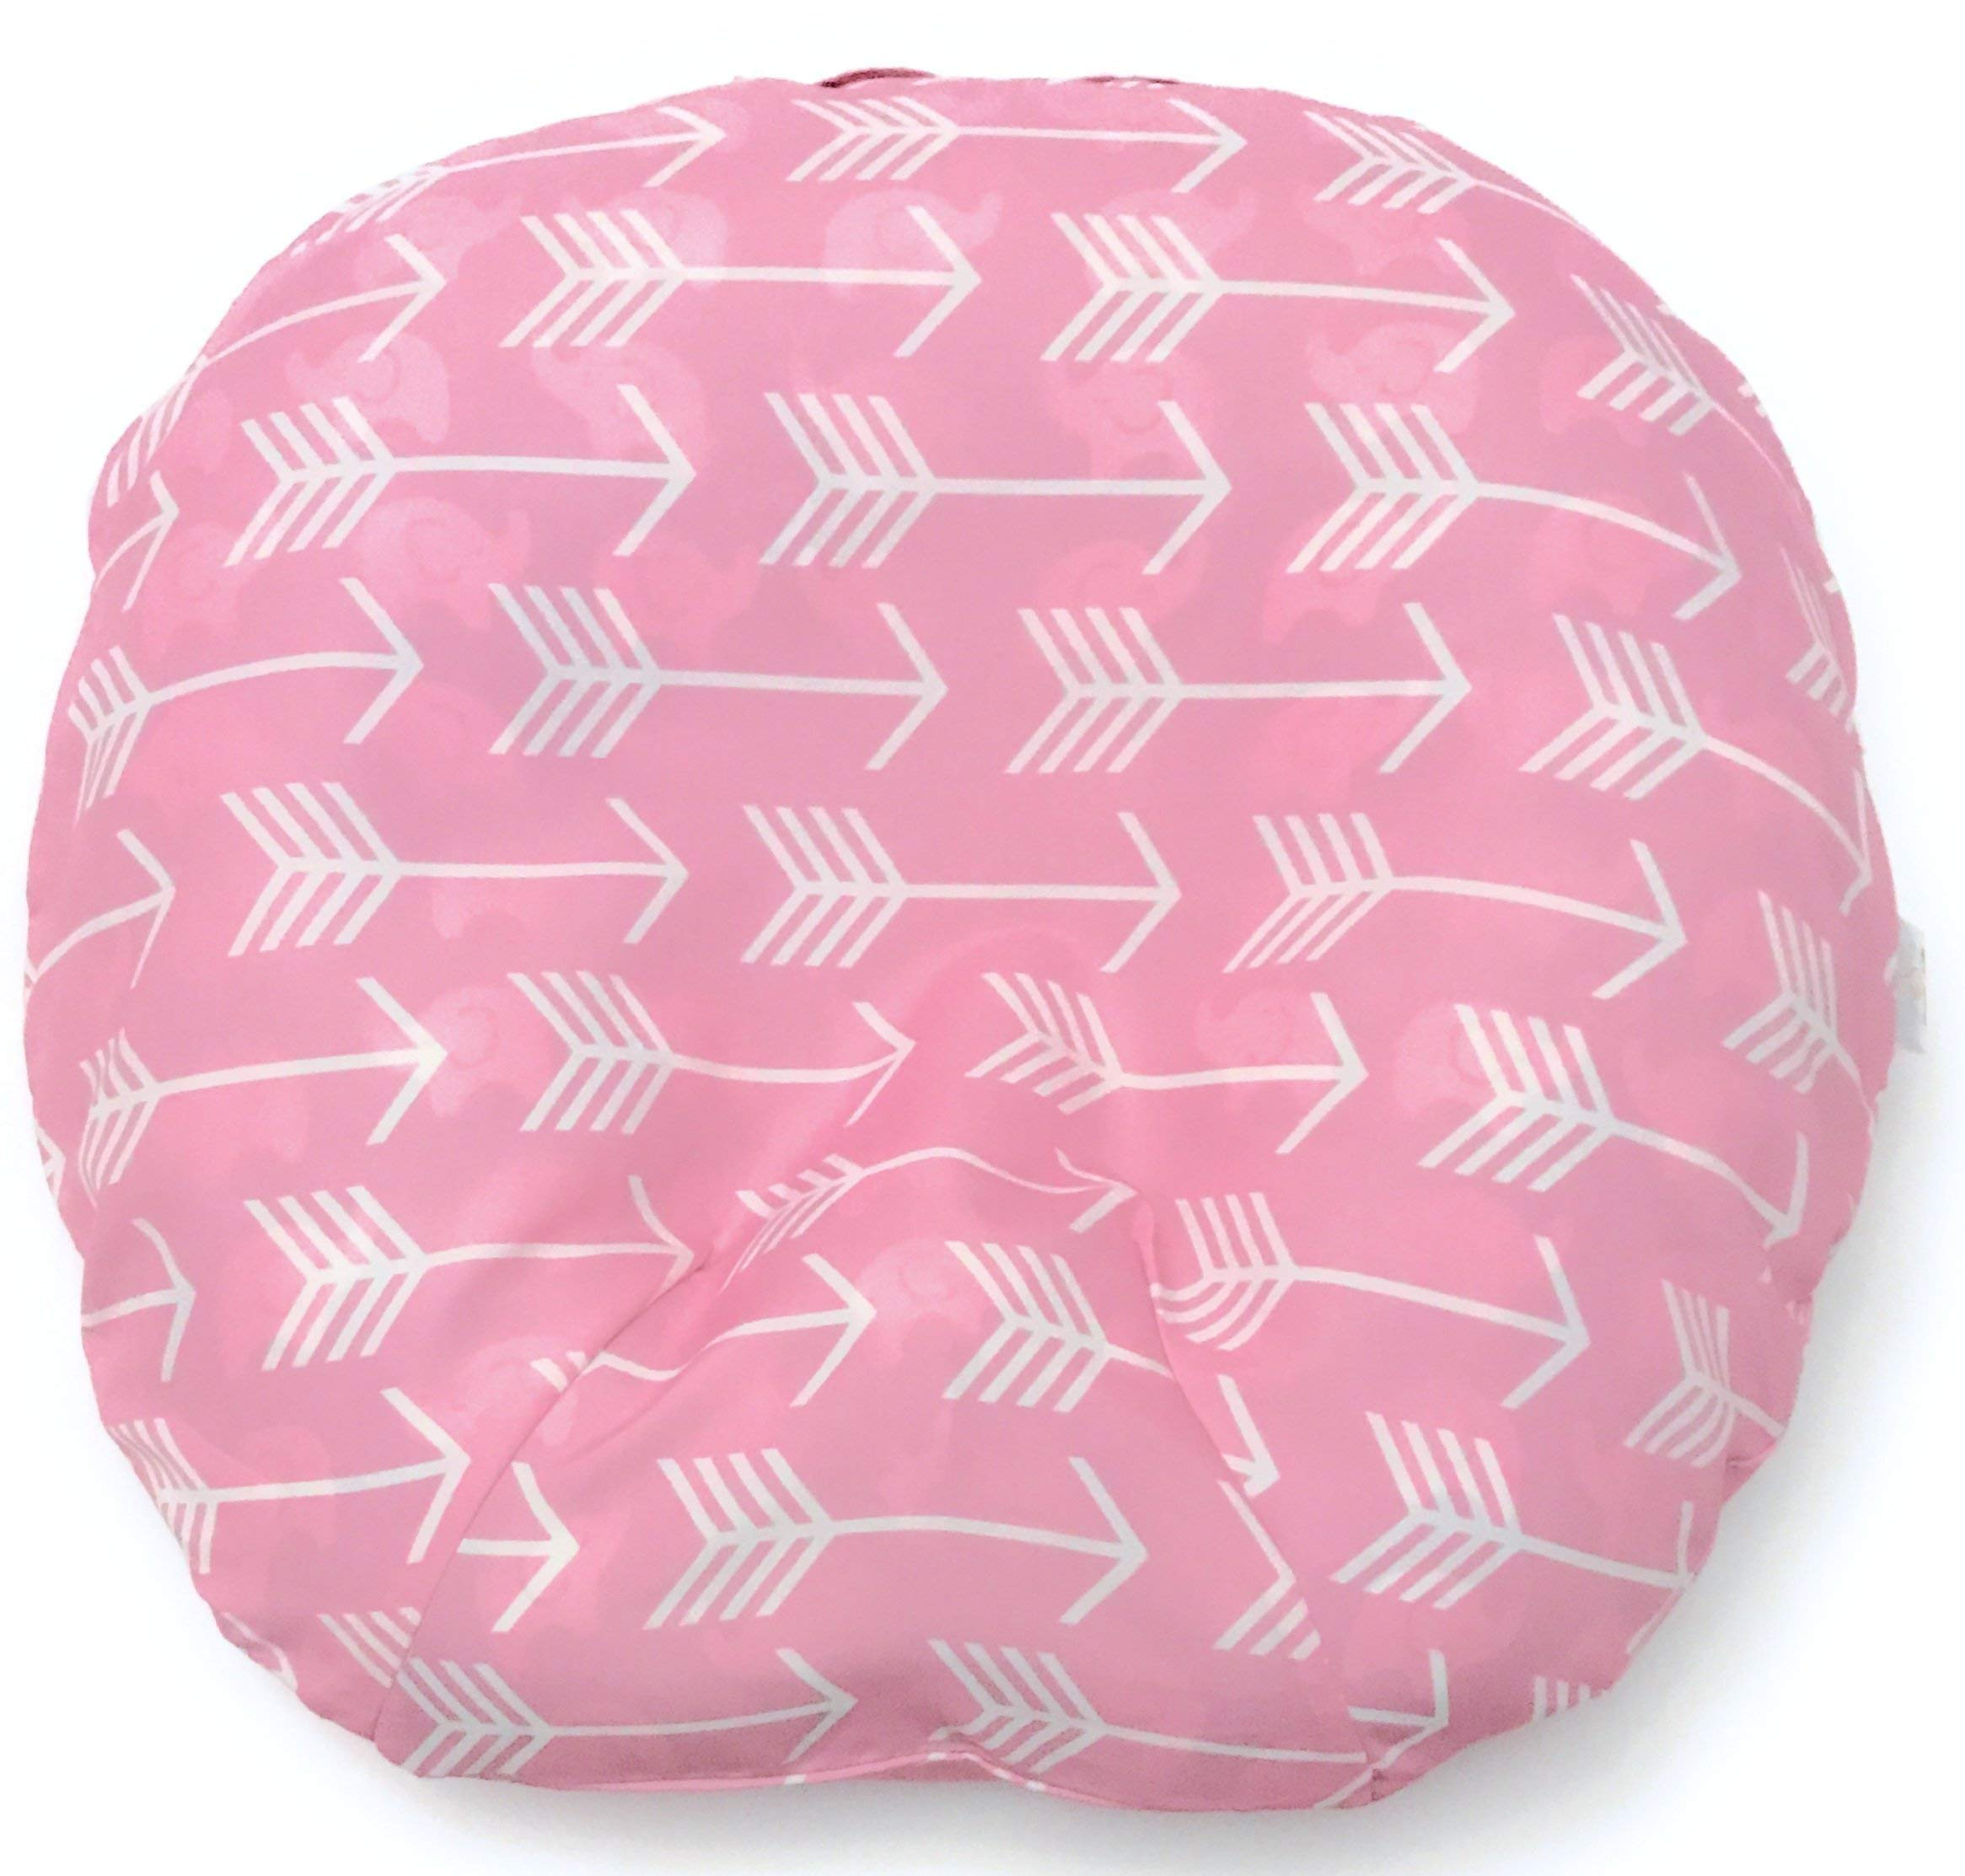 Removable Cover for Newborn Baby Lounger/Pink/Fits Boppy Lounger/Water Resistant/Hypoallergenic/Premium Quality Polyester/Easy Cleaning/Soft and Comfy/Nice Carrying Handle(Lounger Pillow Not Included)